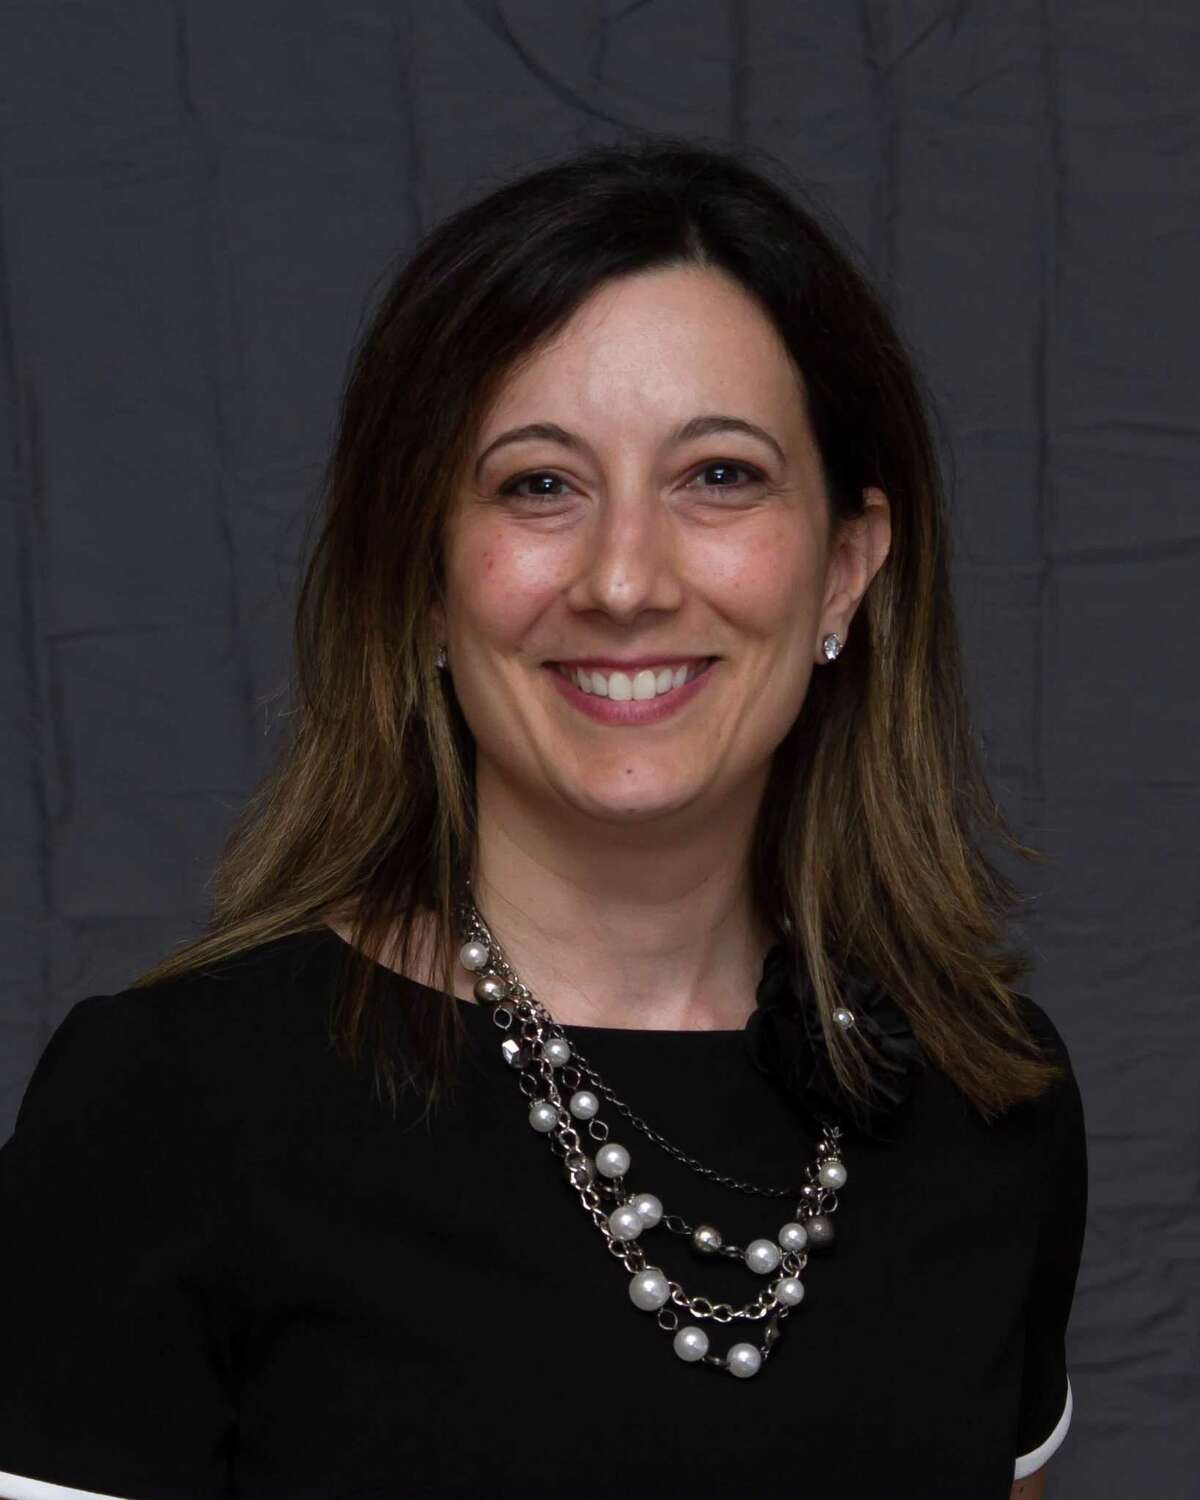 New Milford Public Schools Board of Education appointed Alisha DiCorpo to serve as interim superintendent on Thursday, Oct. 29.